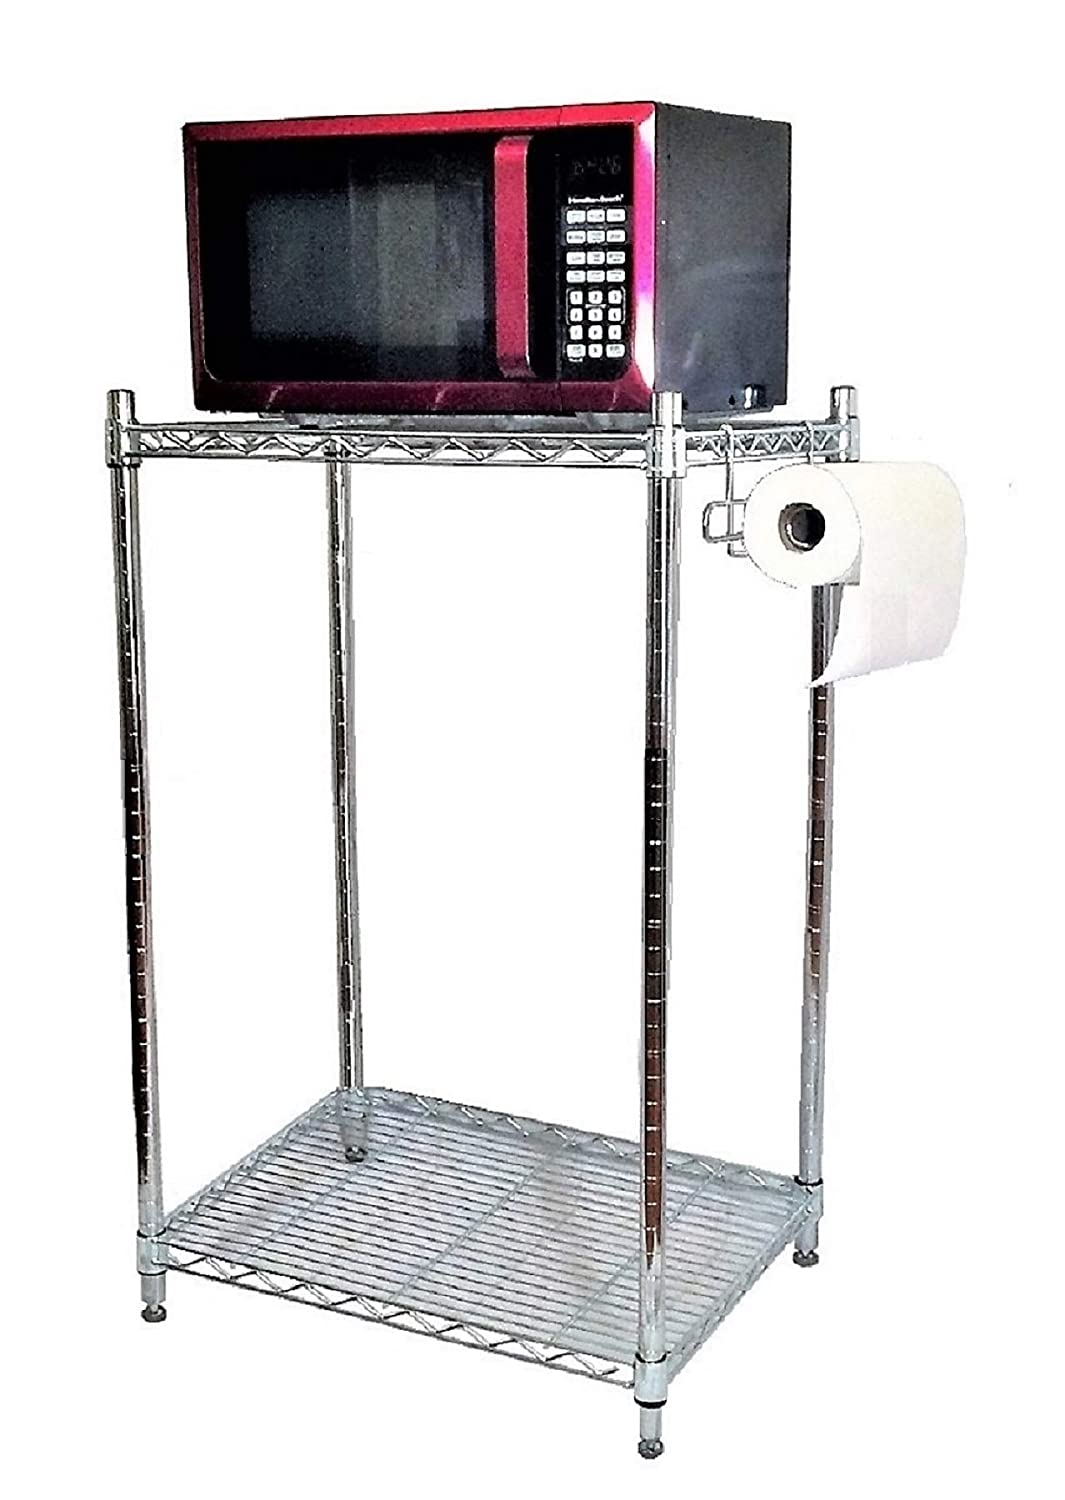 Mini Fridge Stand Storage Cabinet With Shelves For Microwave College